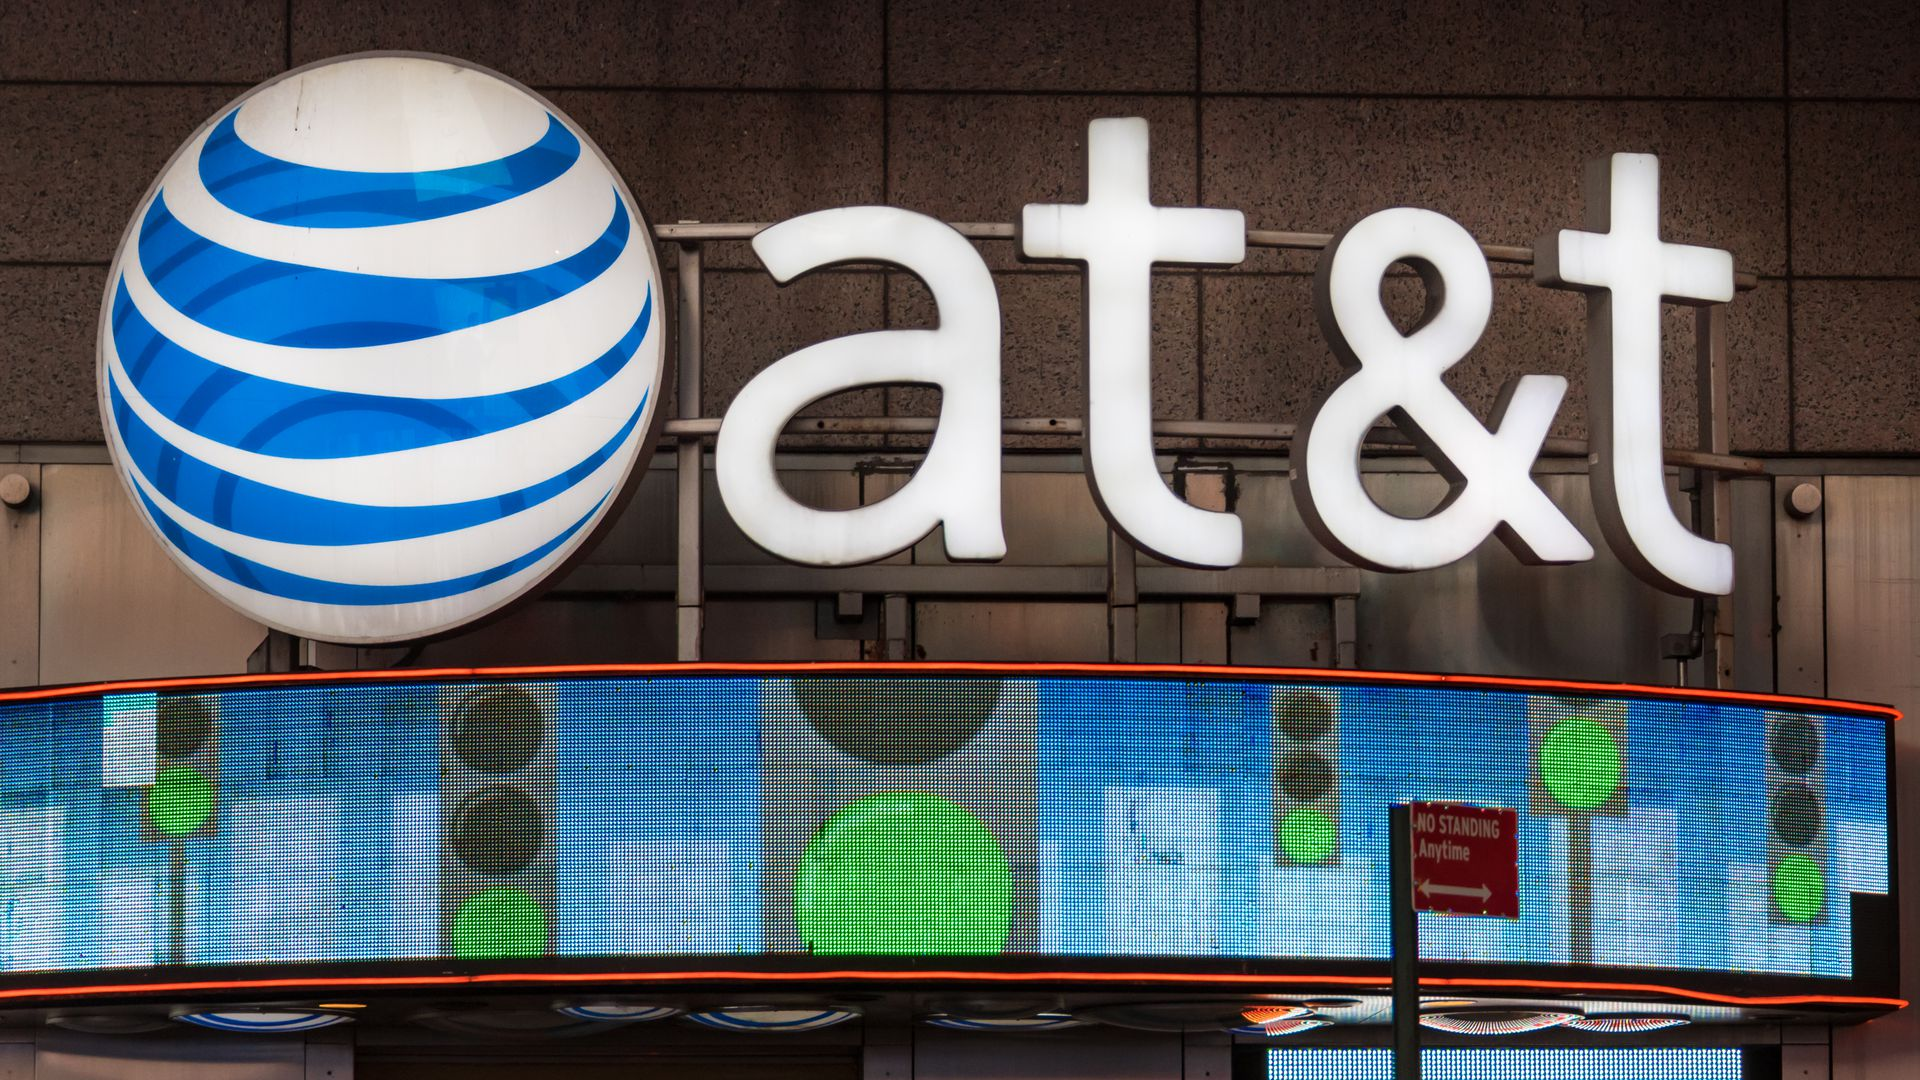 AT&T's logo in New York